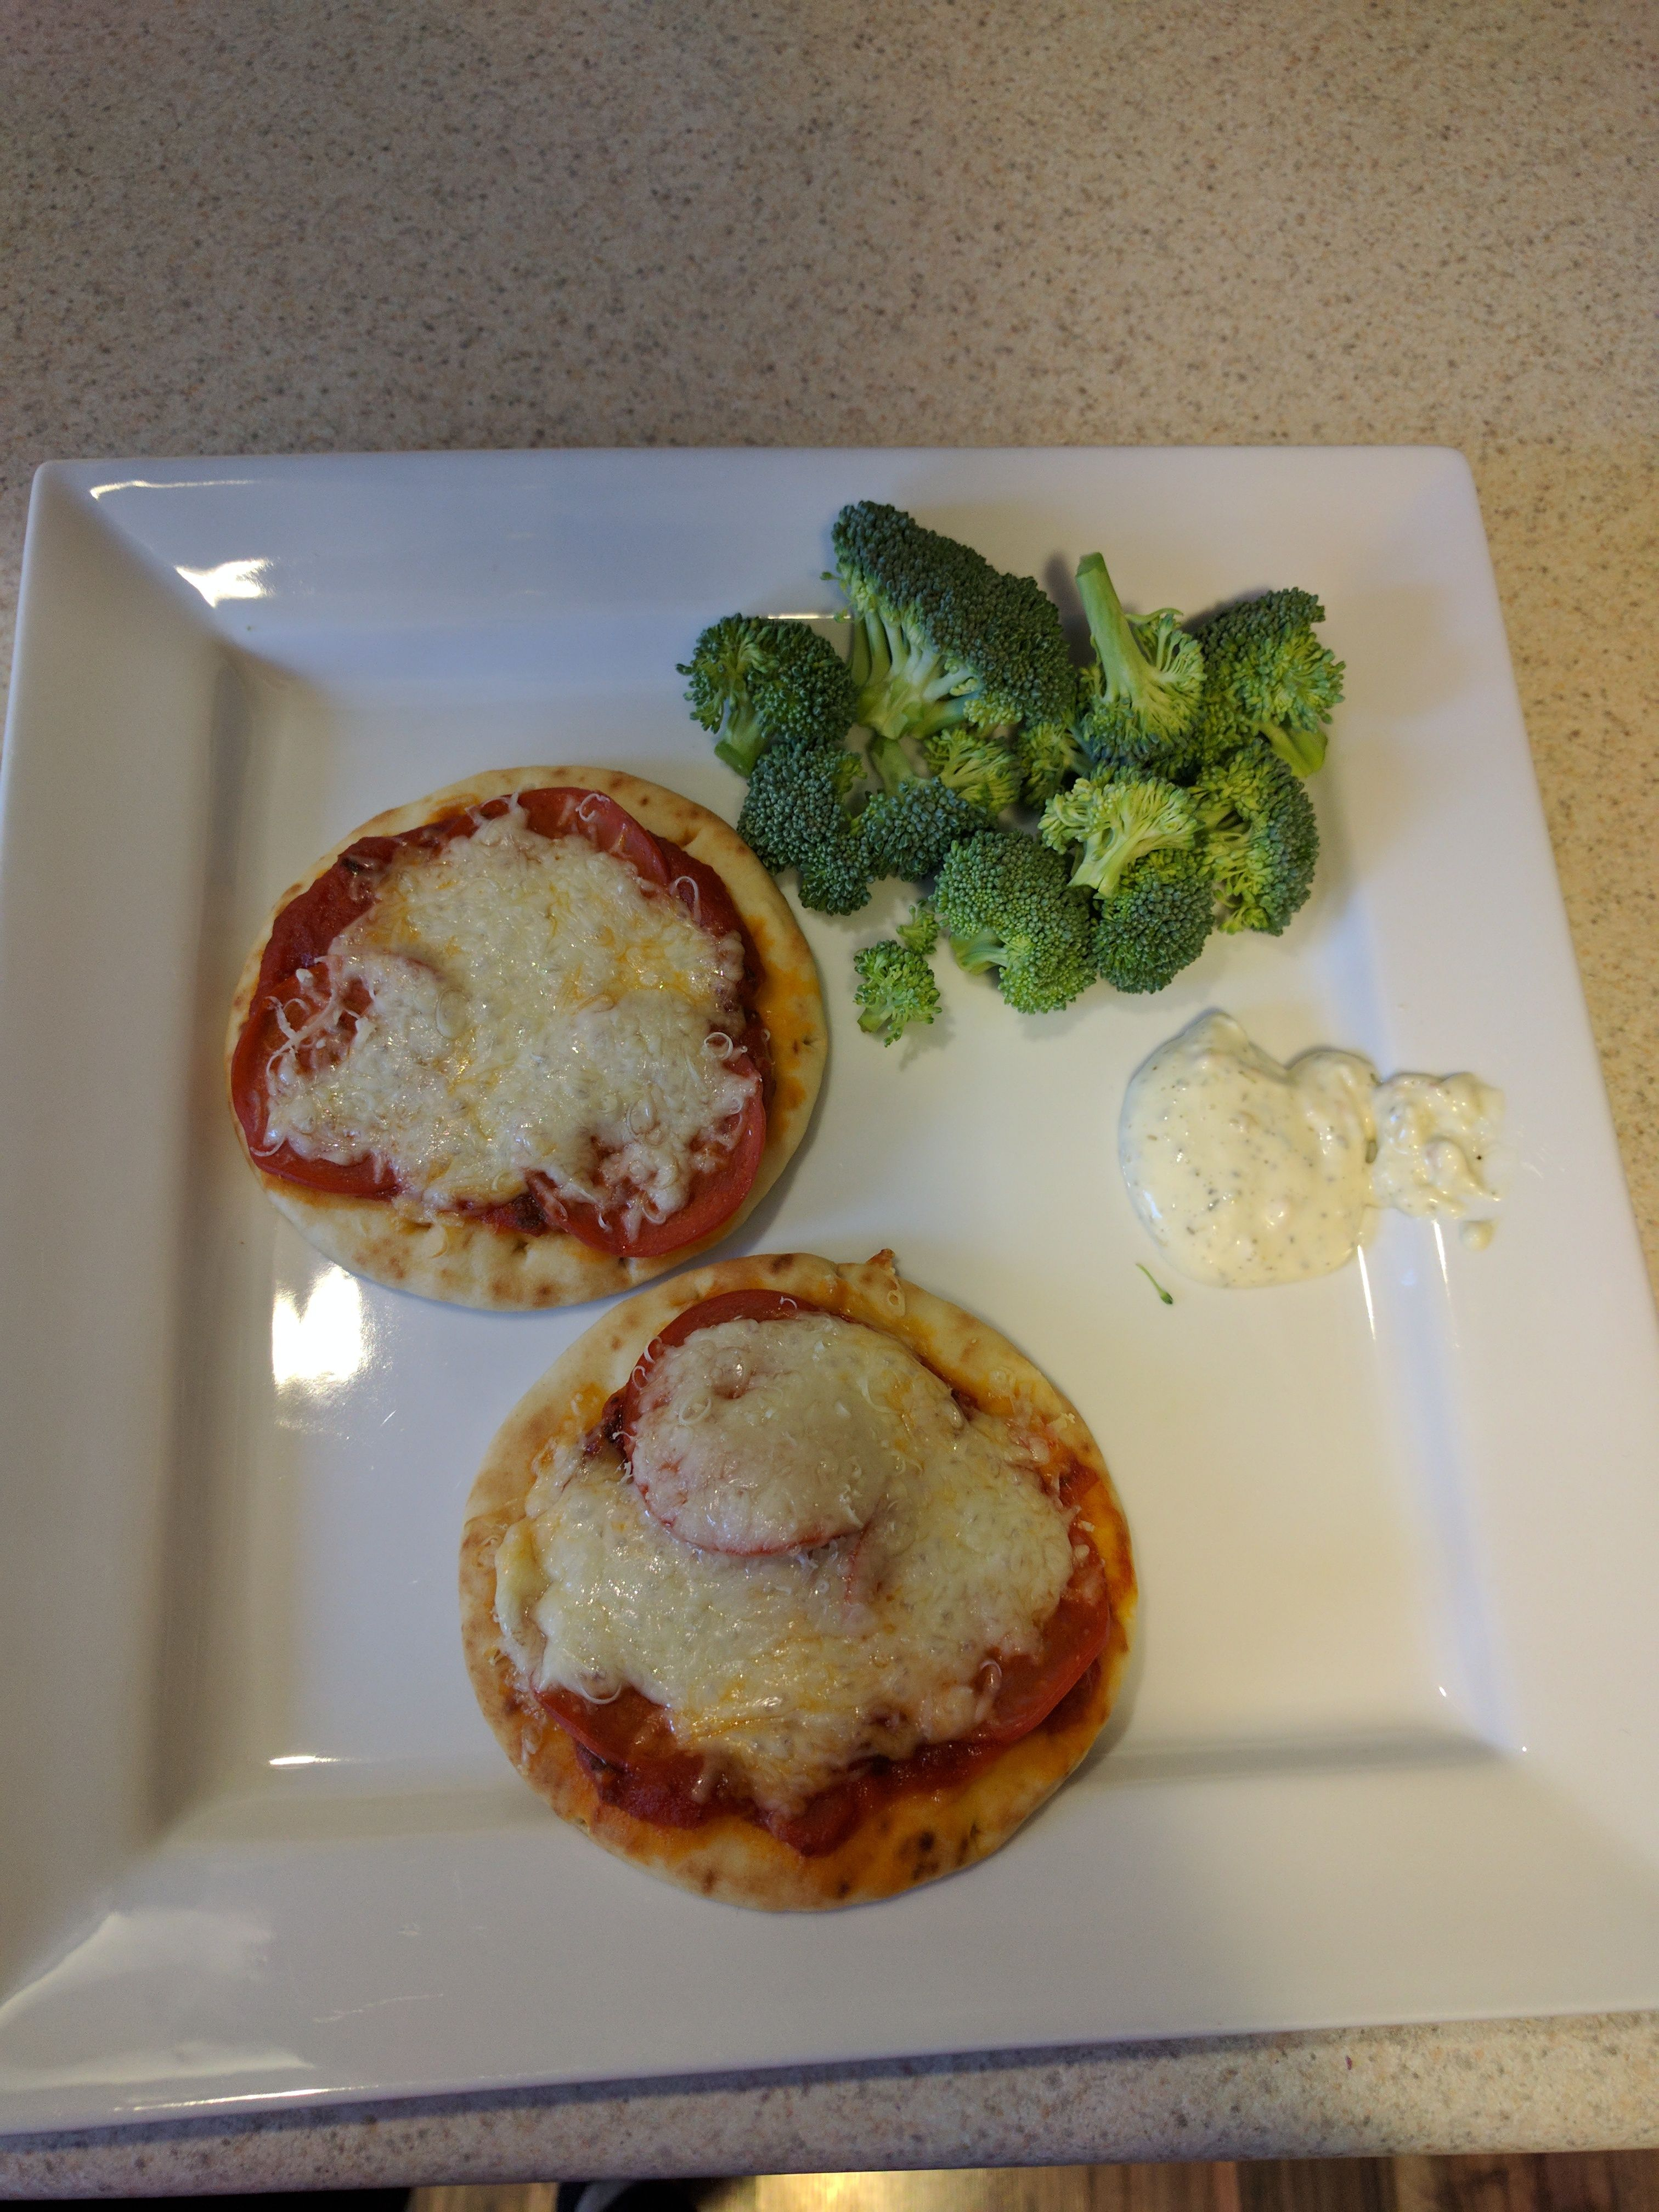 321 calorie mini pizza lunch #goodnutrition #physicalactivity #goodfood #vegetables #JuicePlus #healthymeal #healthyfood #healthy #health #exercise #eatclean